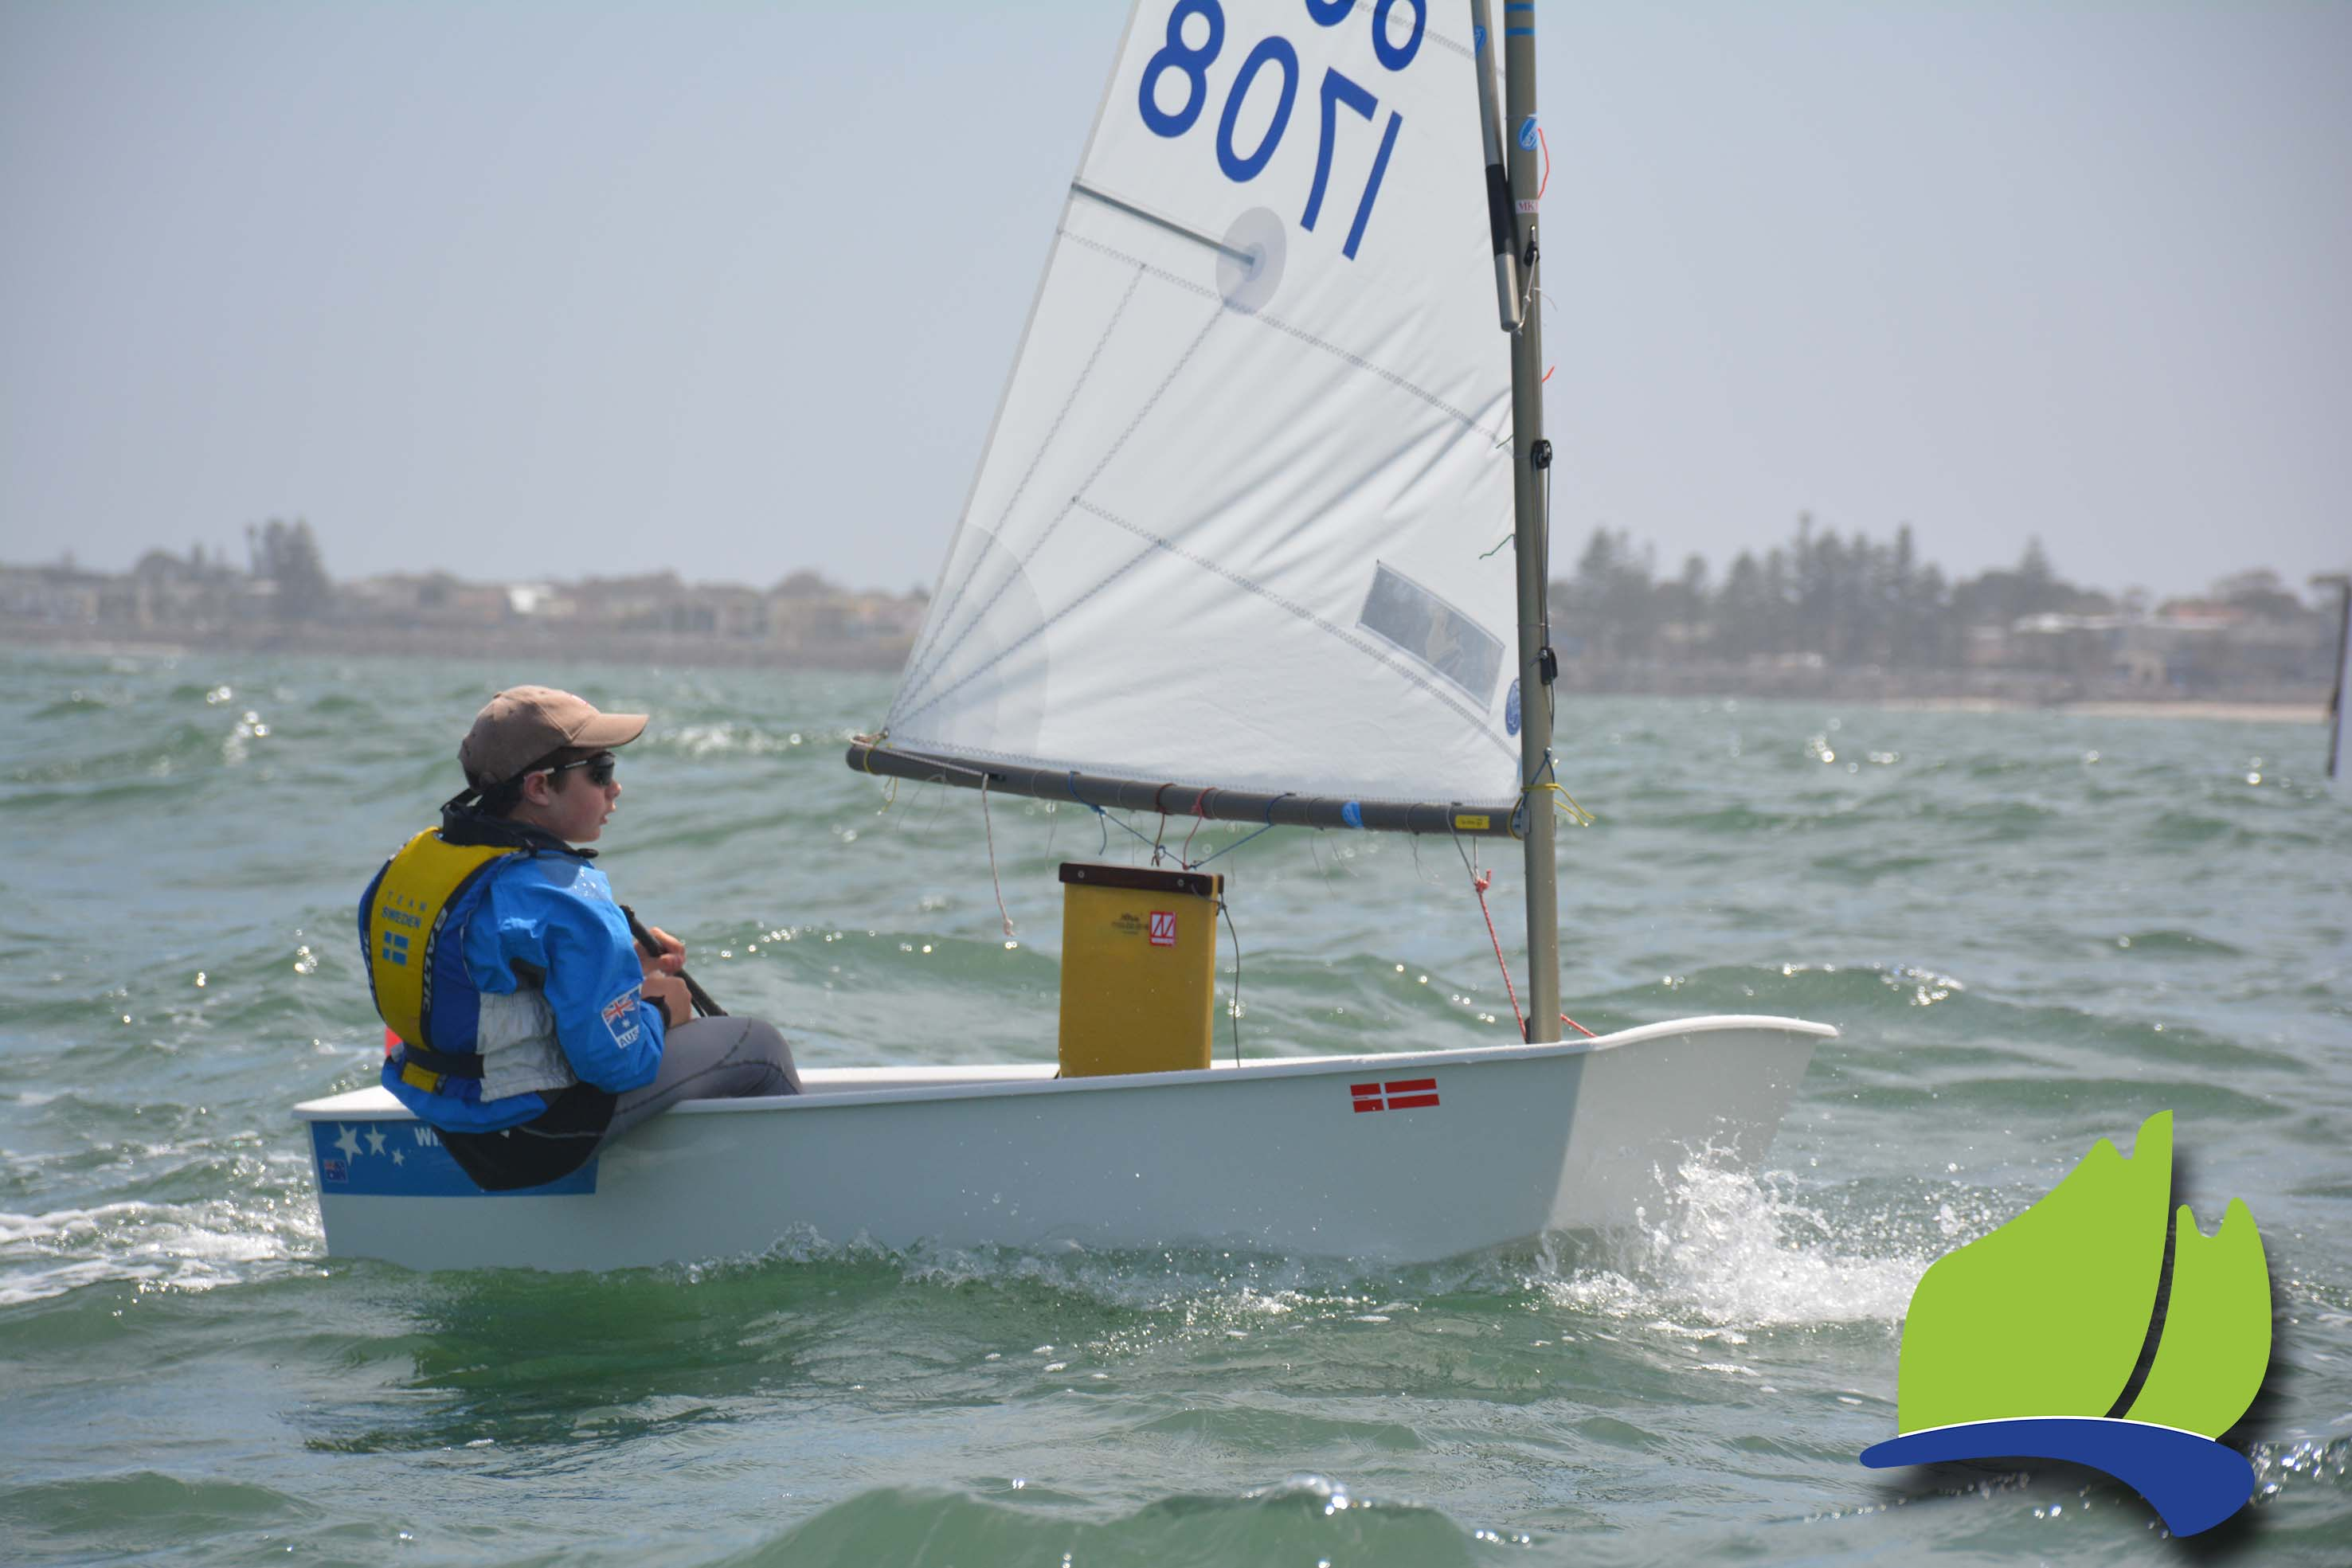 Adelaide's Ben Hinks finished third overall in the Optimist Open Fleet.